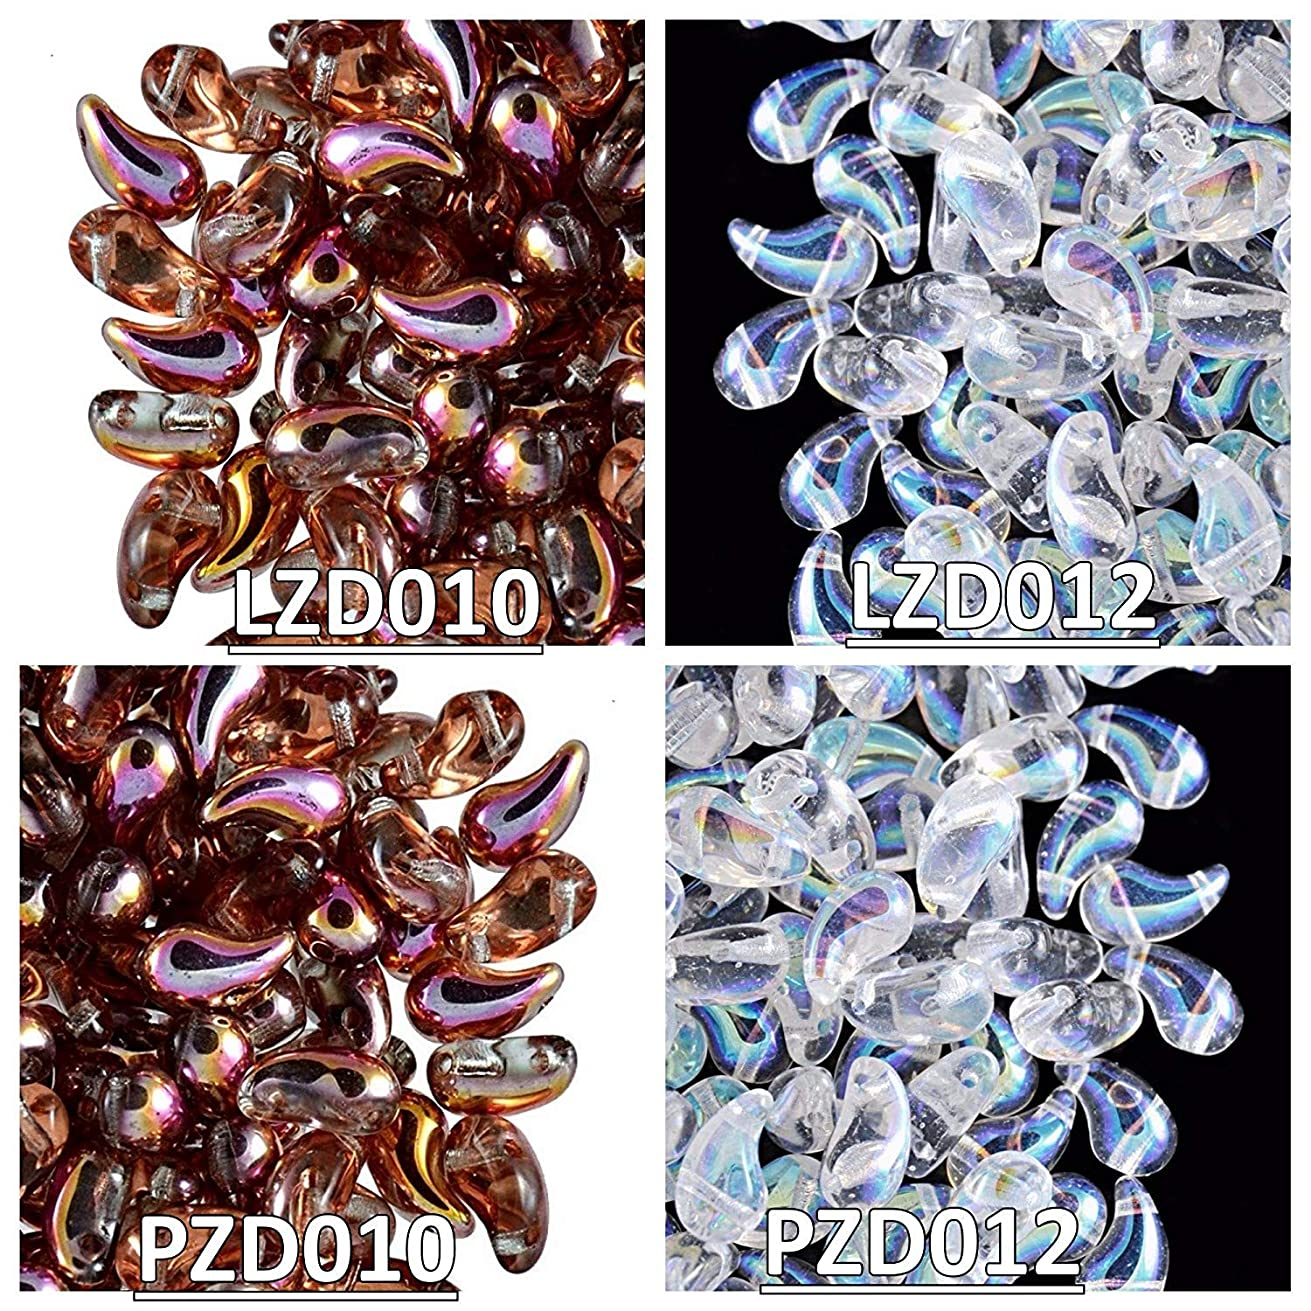 4x20pcs Czech Glass Beads ZoliDuo, 5x8mm, 2 colors in right and left versions, Set ZD 016 (LZD010 LZD012 PZD010 PZD012)